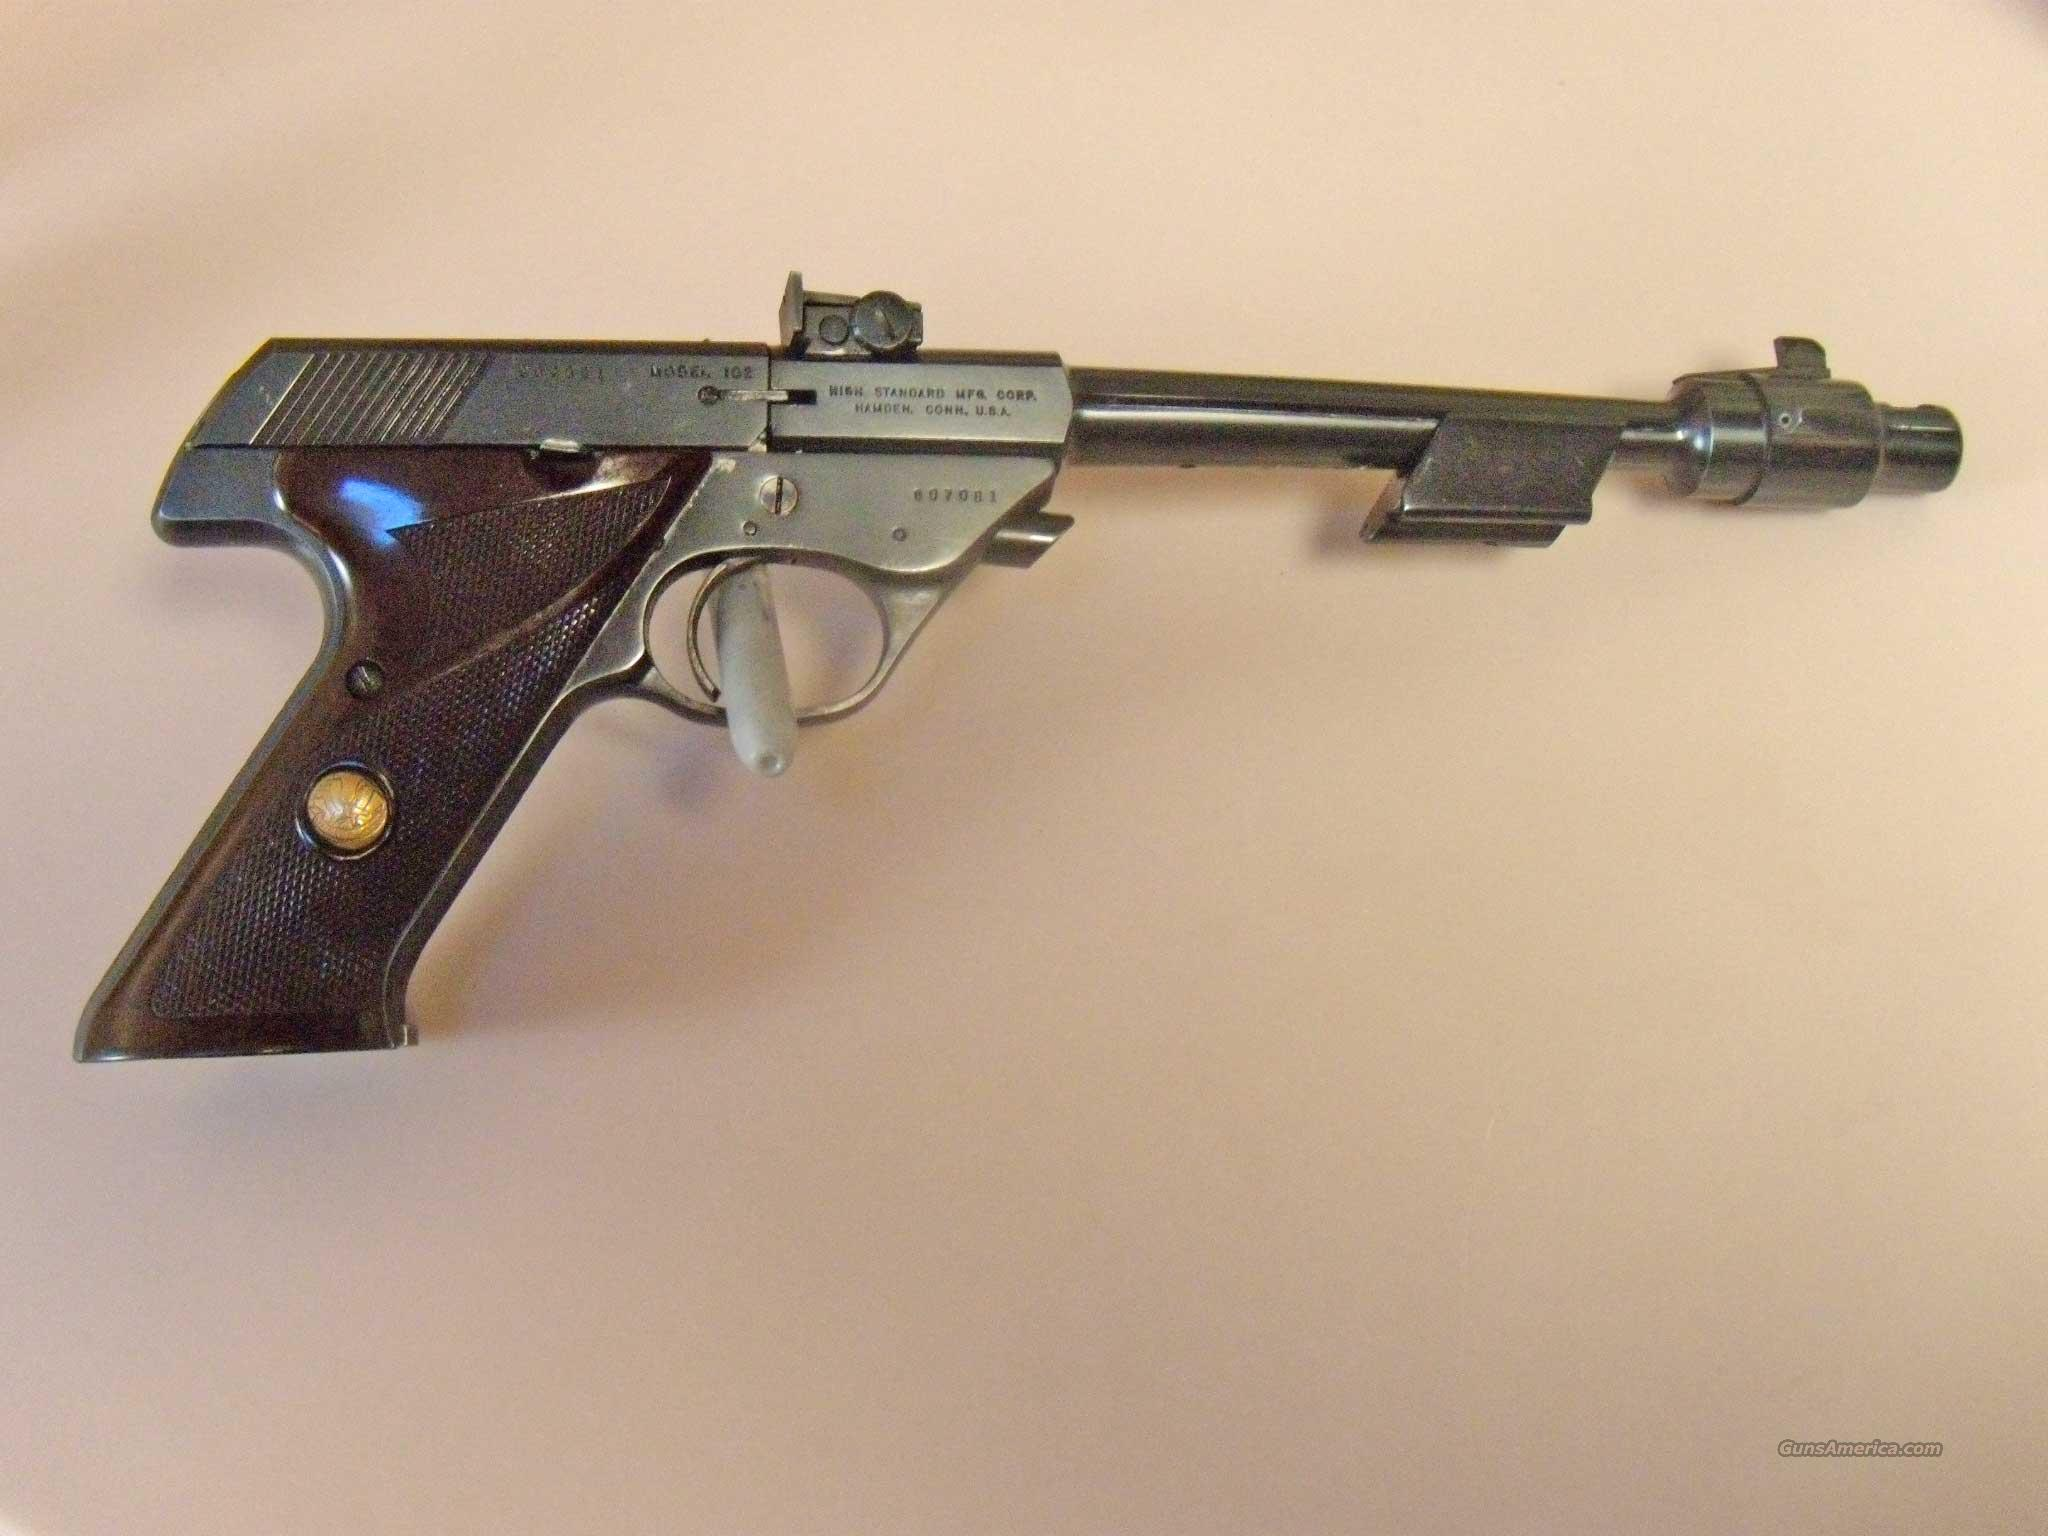 HIGH STANDARD,102, SUPERMATIC CITATION  ''SPACE GUN''  Guns > Pistols > High Standard Pistols